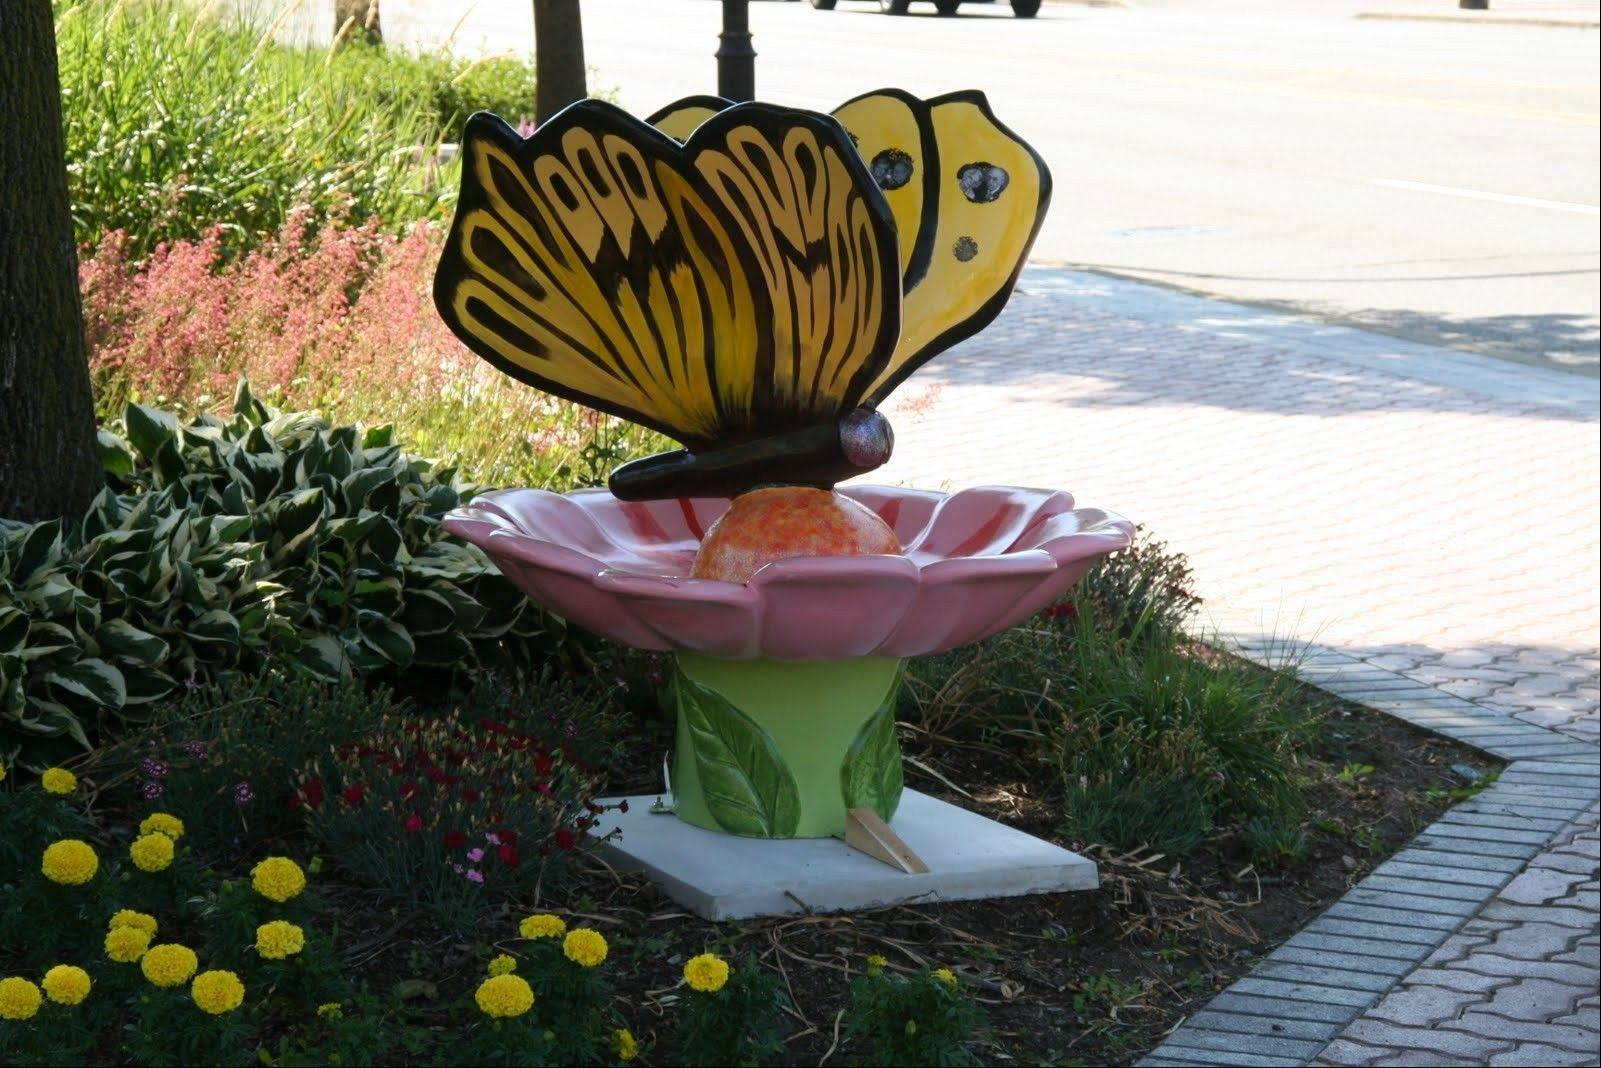 There are 64 painted butterflies out now, and more are coming.